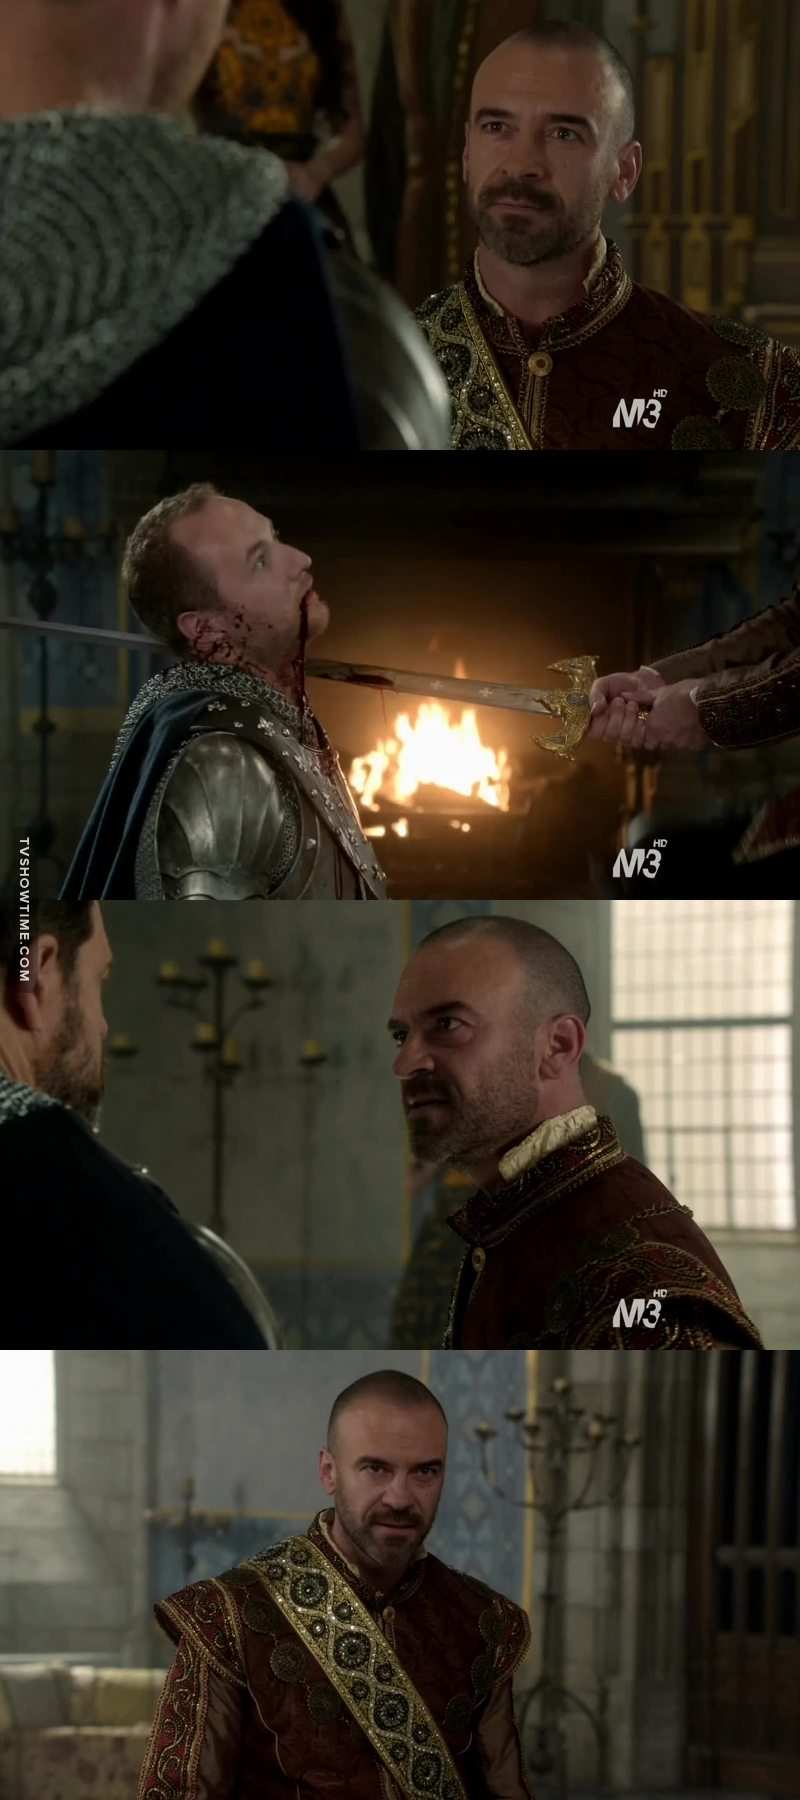 Henry was amazing this episode, great acting. I thought this scene was so badass, but overall he was great!